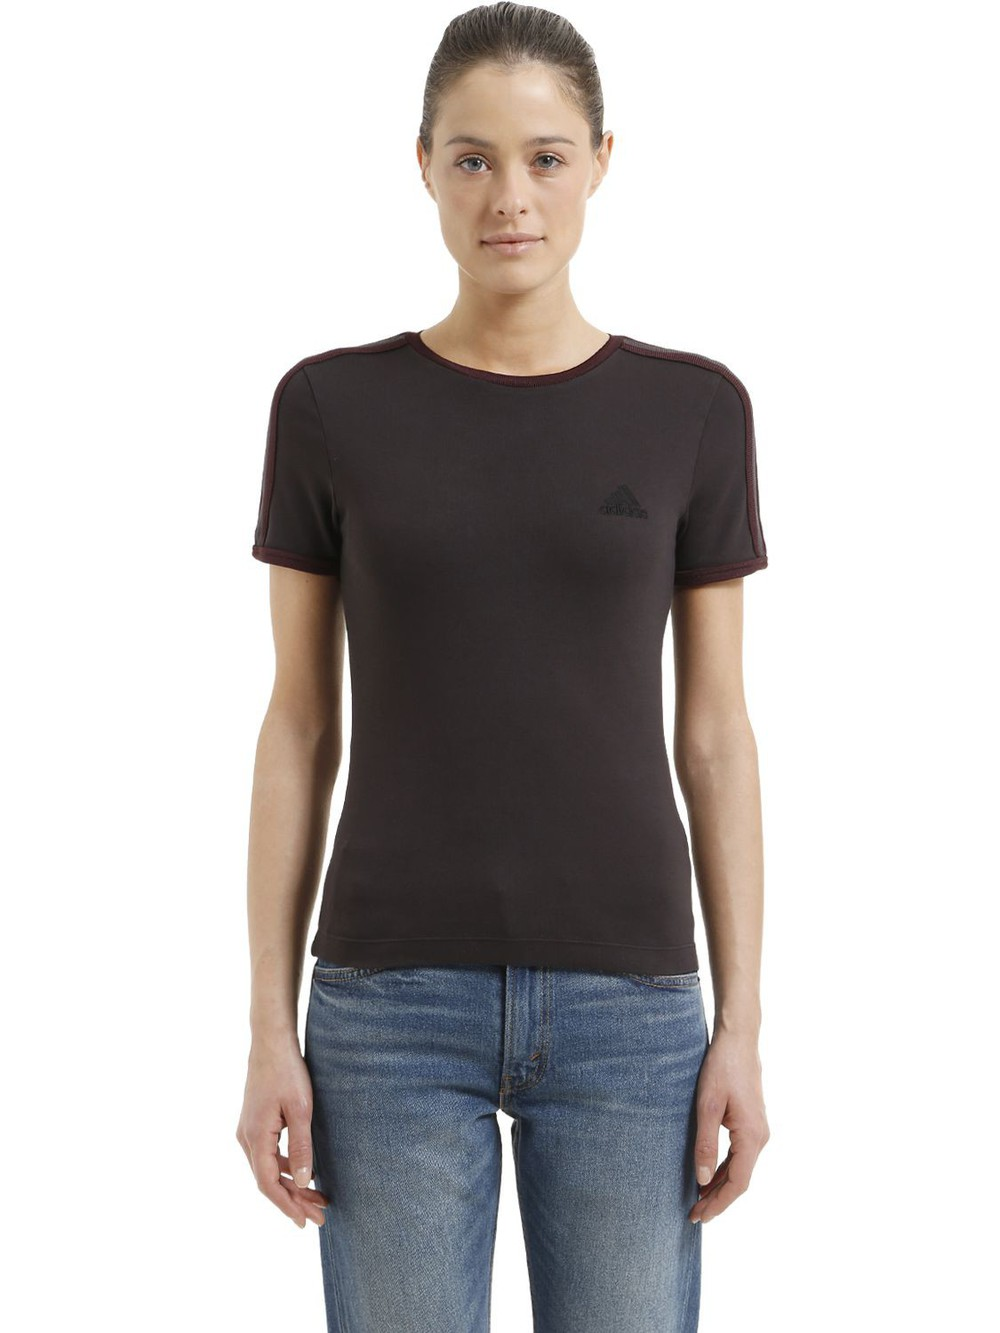 YEEZY Baby Fit Cotton Jersey T-shirt in black